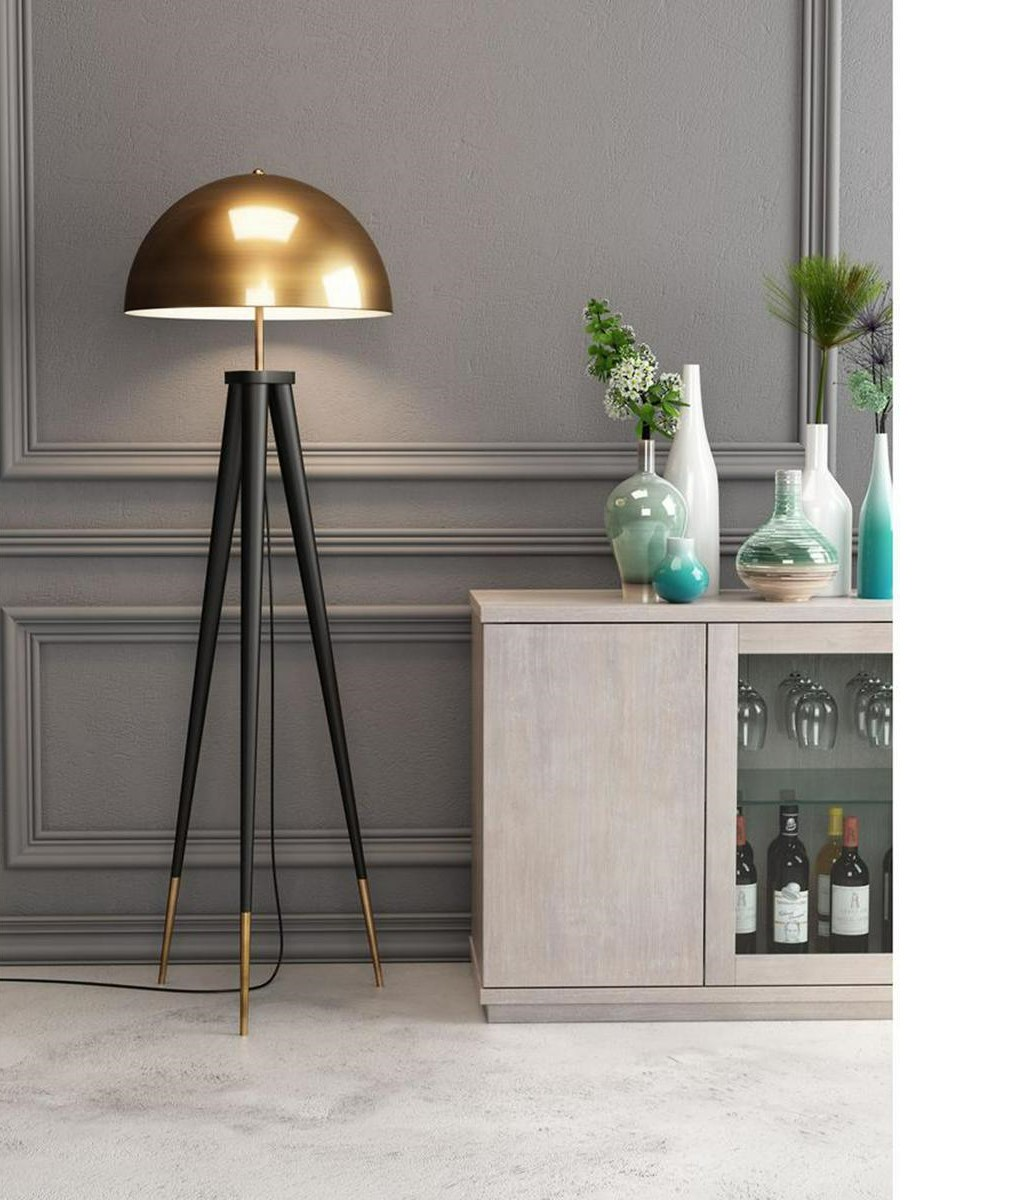 Mason Floor Lamp - Living Room Lighting